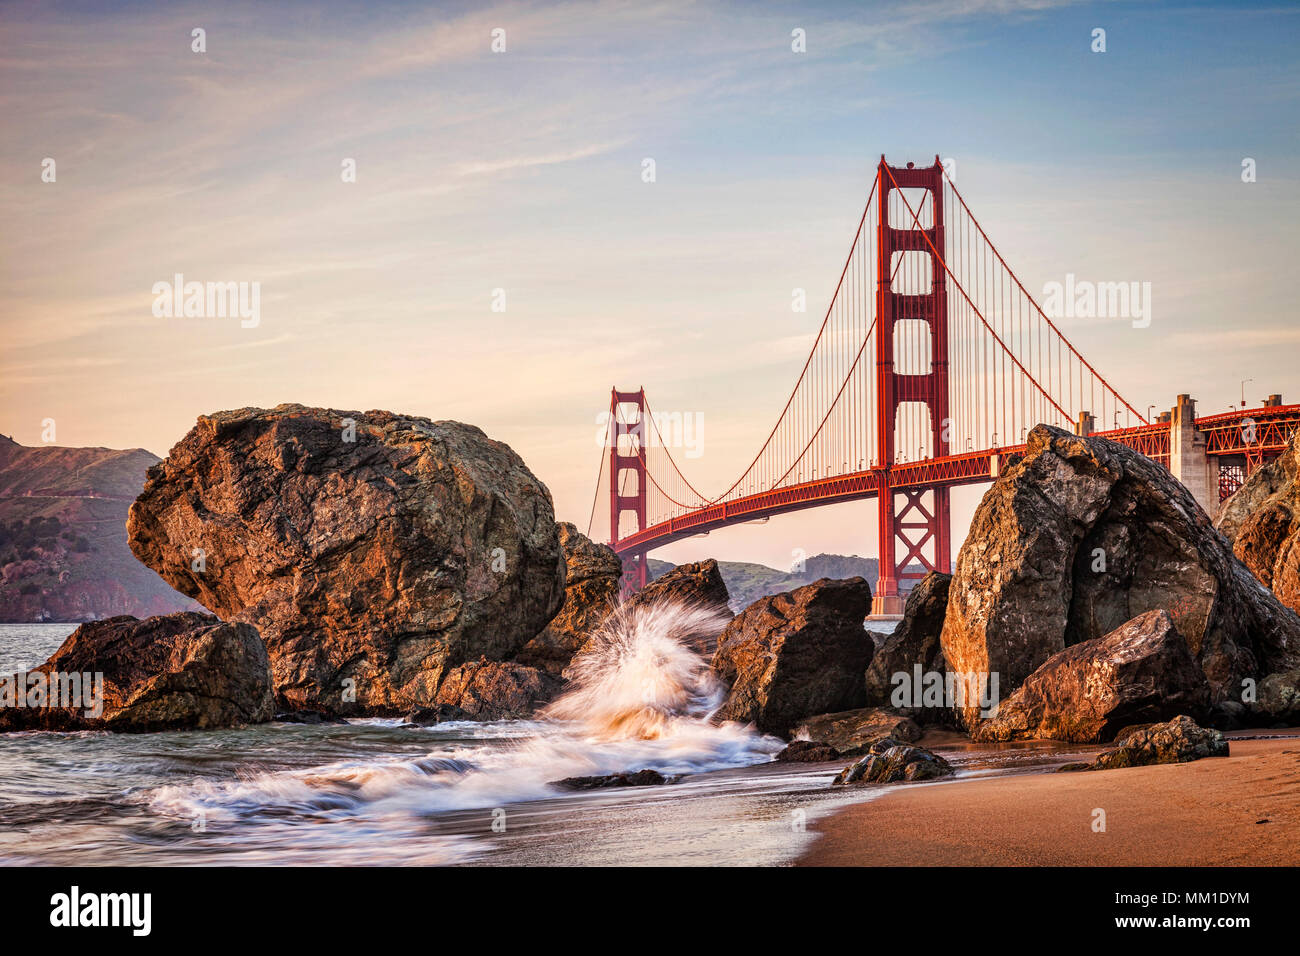 Golden Gate Bridge, San Francisco, approaching sunset., with a wave splashing up against rocks. - Stock Image